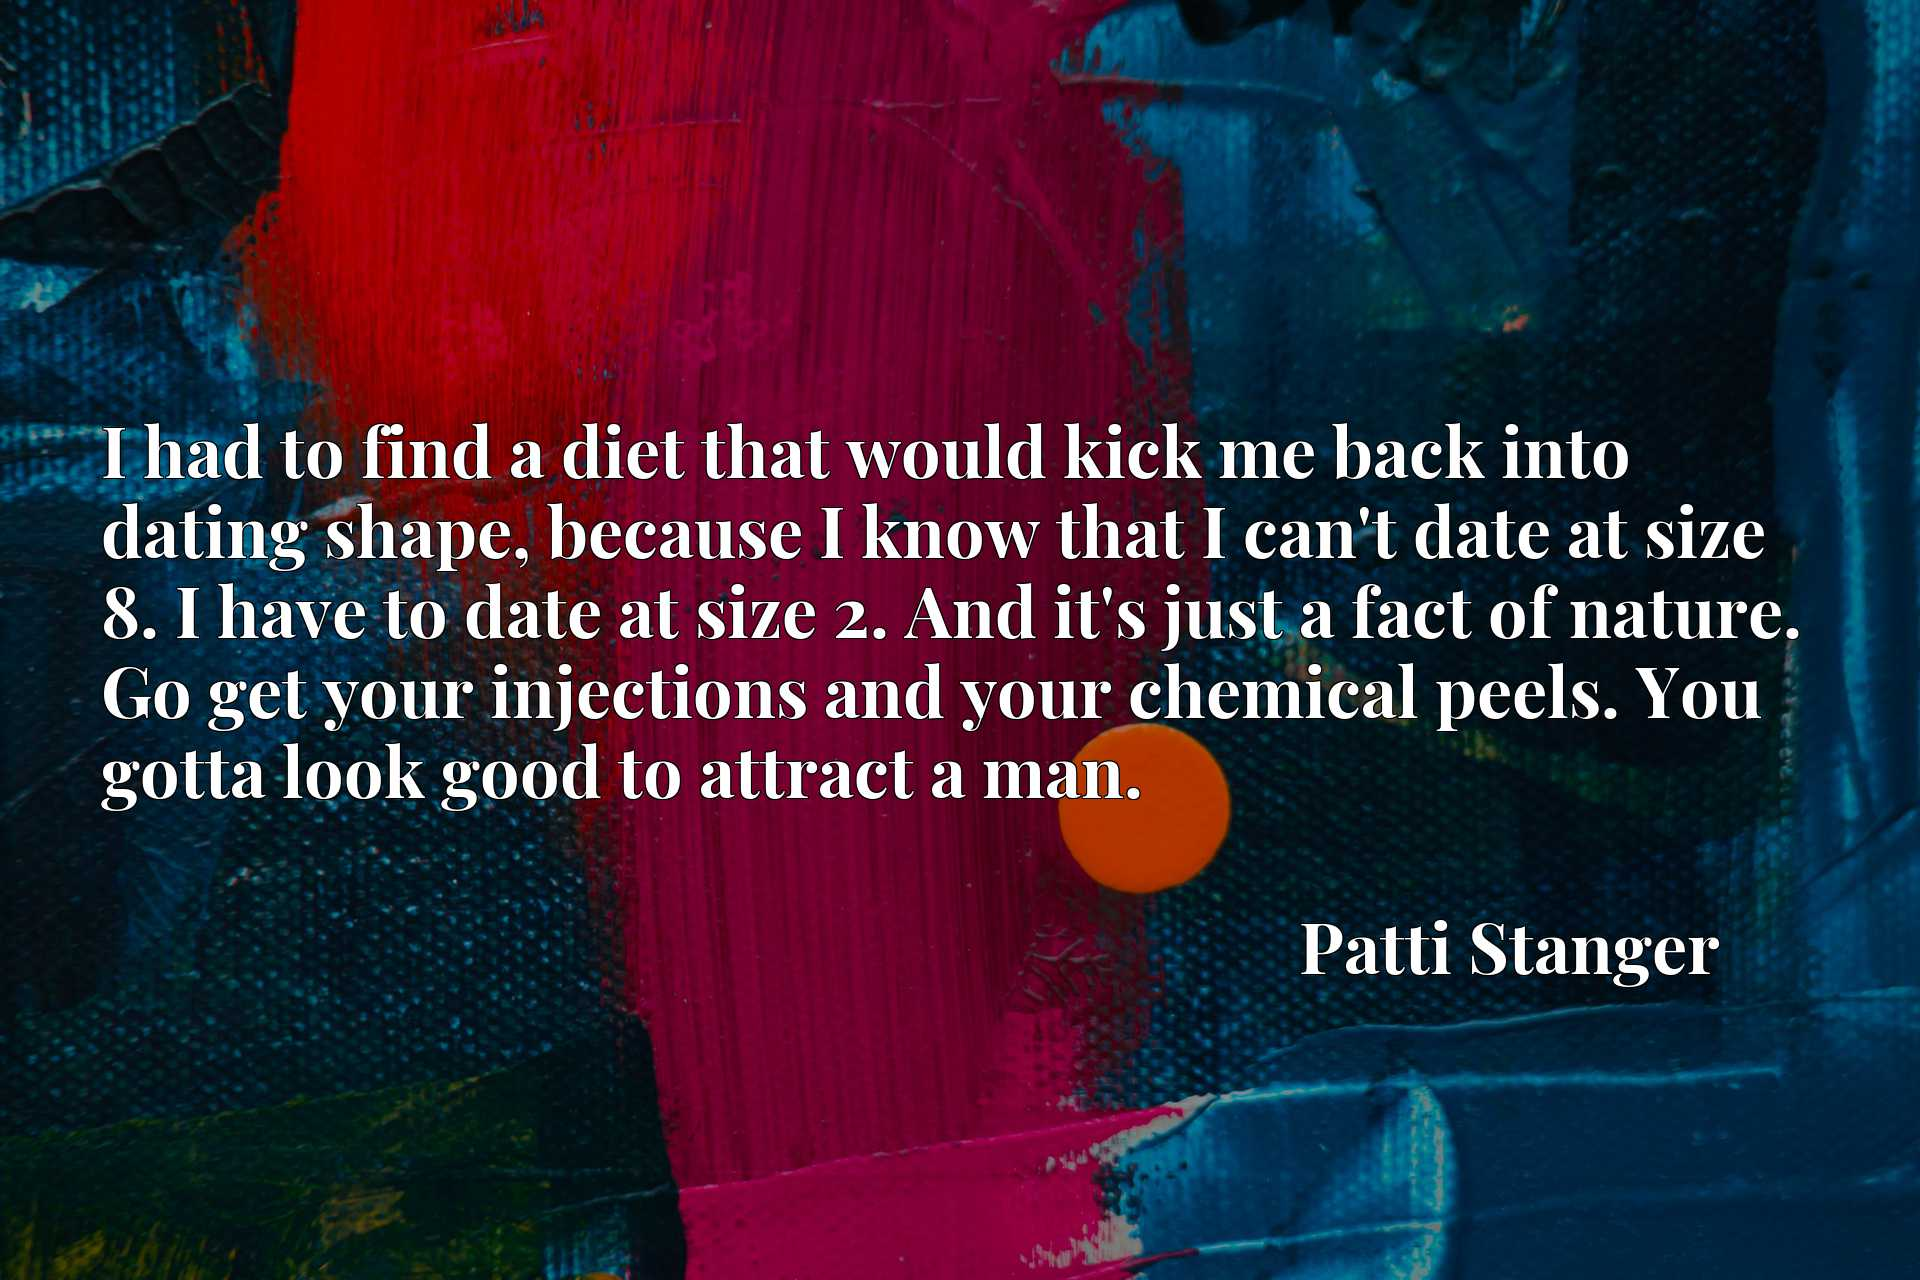 I had to find a diet that would kick me back into dating shape, because I know that I can't date at size 8. I have to date at size 2. And it's just a fact of nature. Go get your injections and your chemical peels. You gotta look good to attract a man.